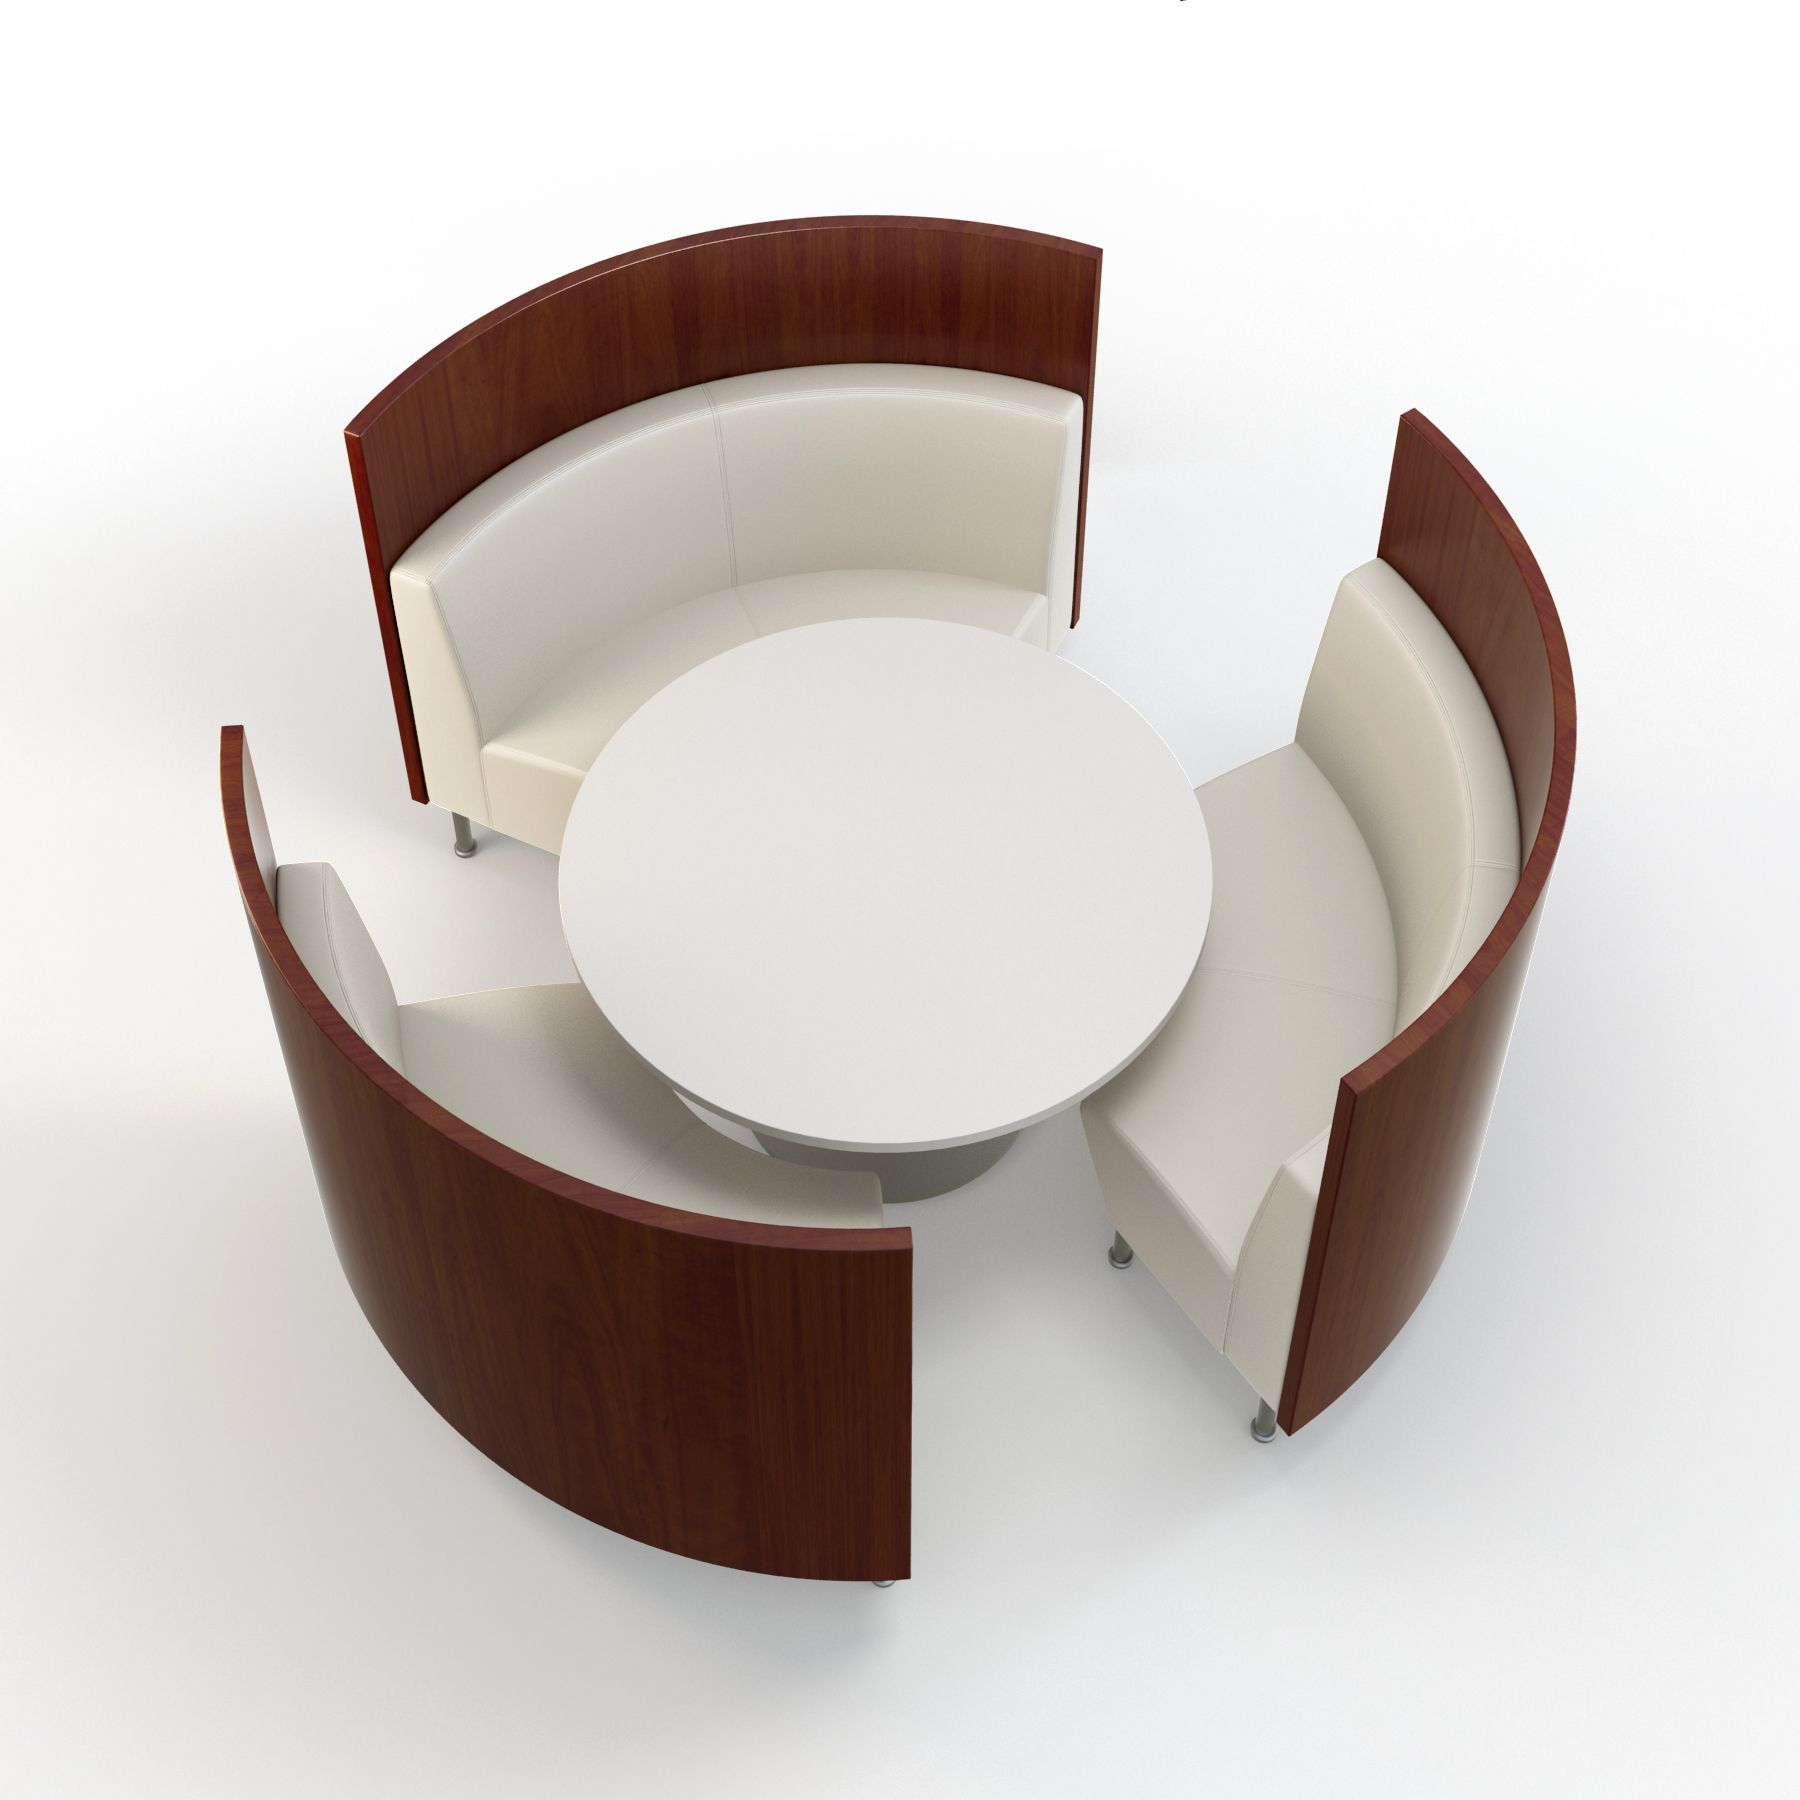 Sculpture Of Intimate And Affectionate Dining Atmospheres With Curved  Banquette Seating Ideas